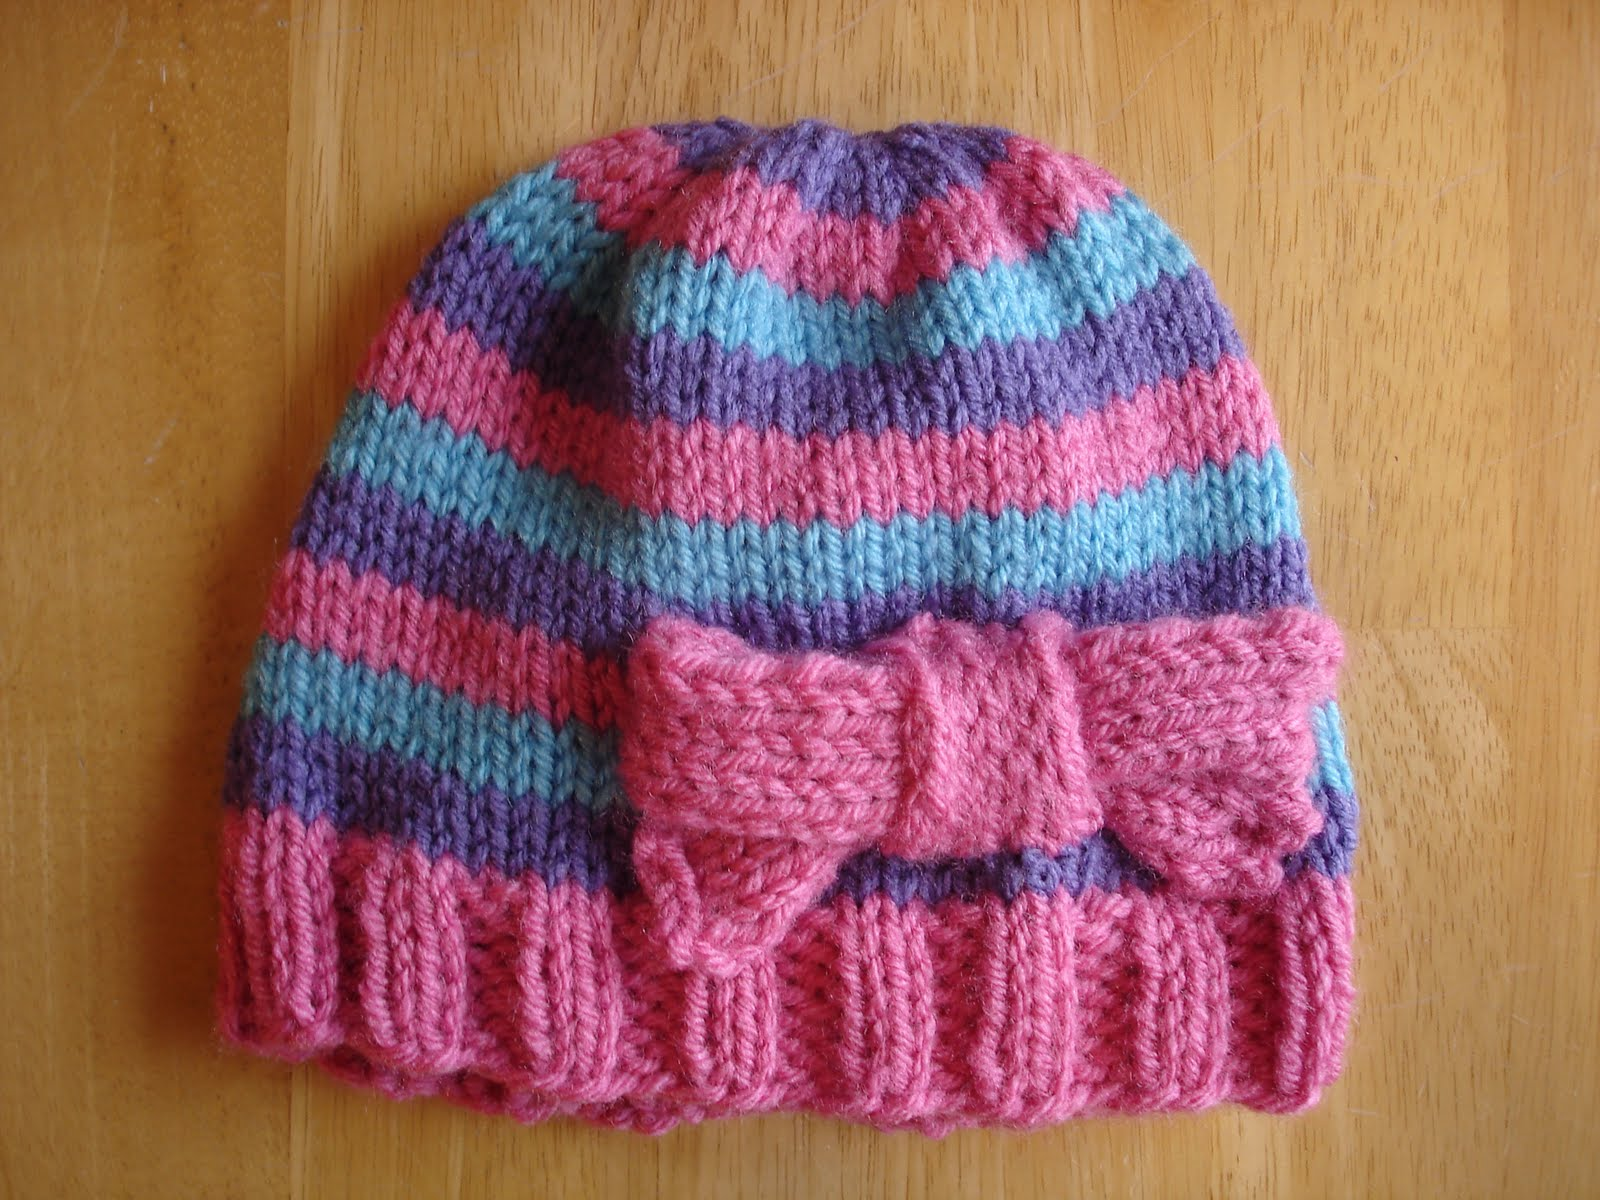 Knitting Pattern For Childrens Hats : Fiber Flux: Free Knitting Pattern...Super Pink Toddler Hat!